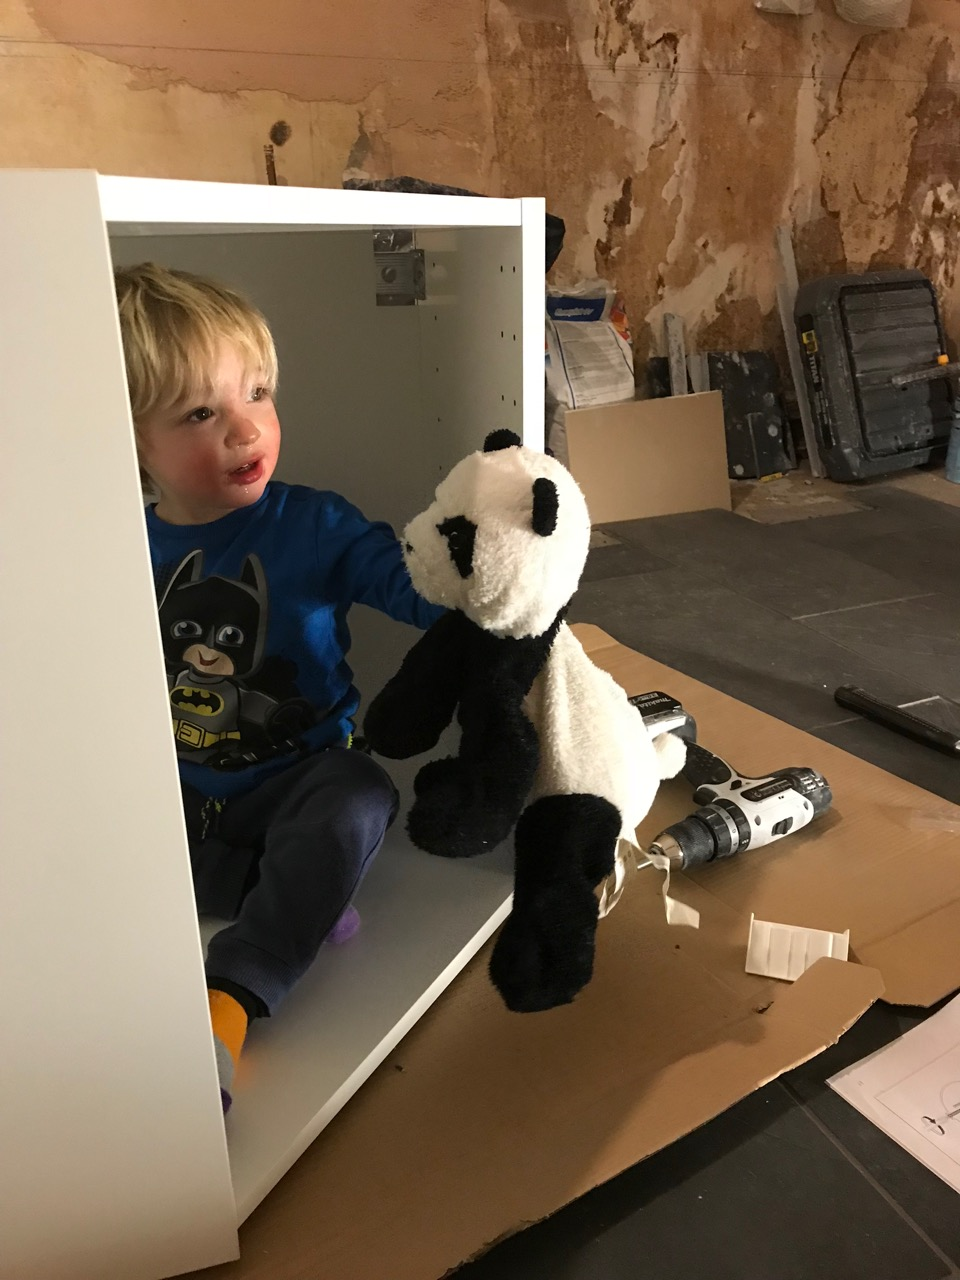 Angus with his panda sitting inside a kitchen cabinet before it's fitted